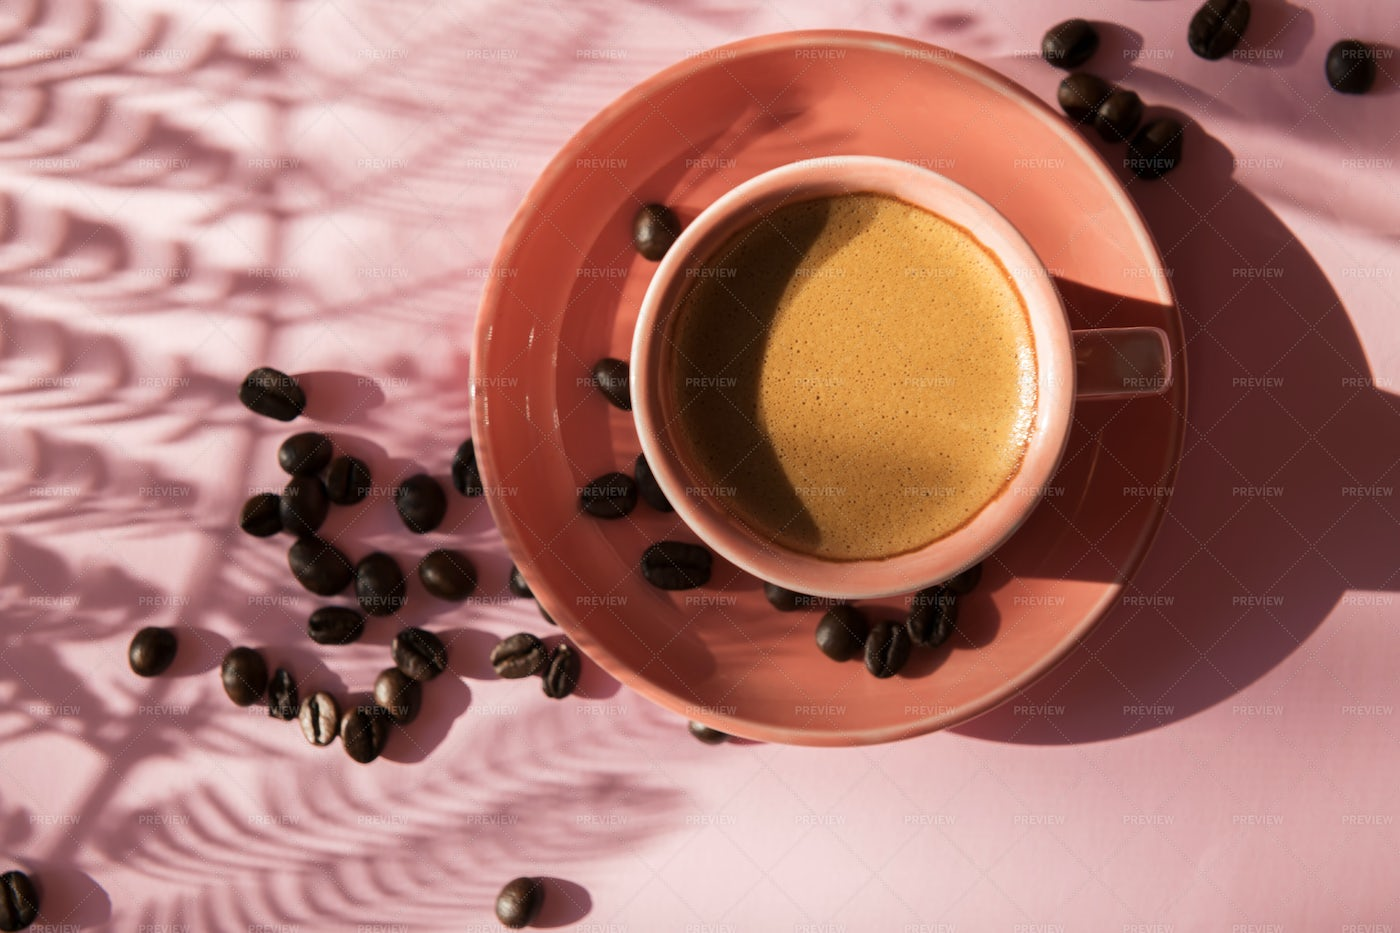 Coral Cup With Coffee Beans: Stock Photos